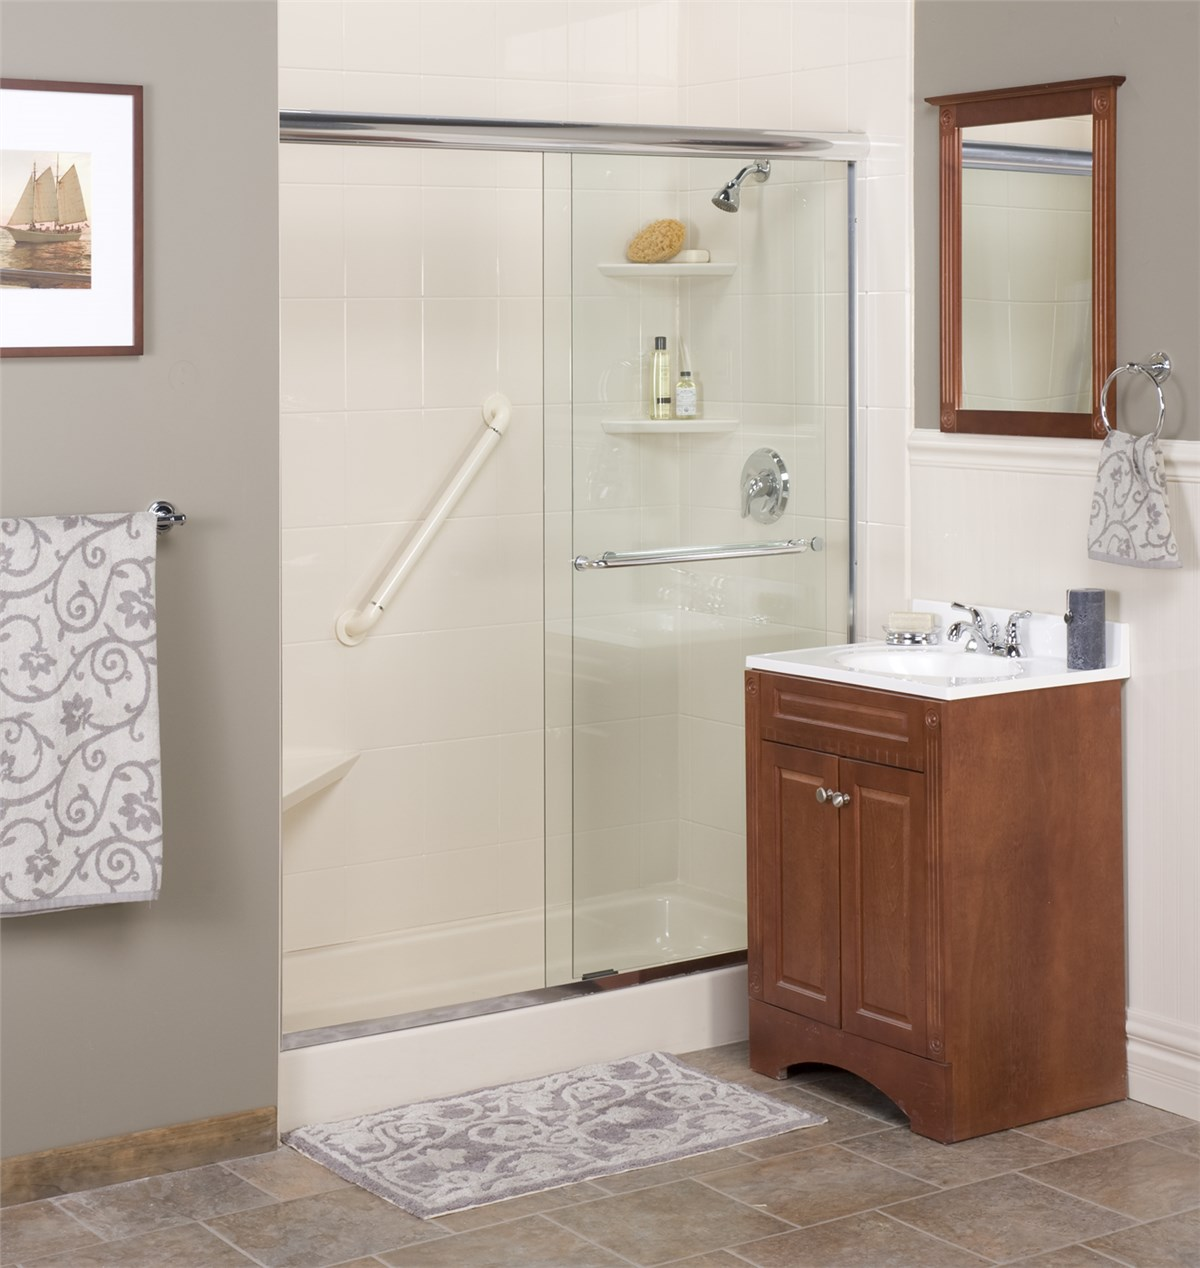 New England Tub To Shower Conversion